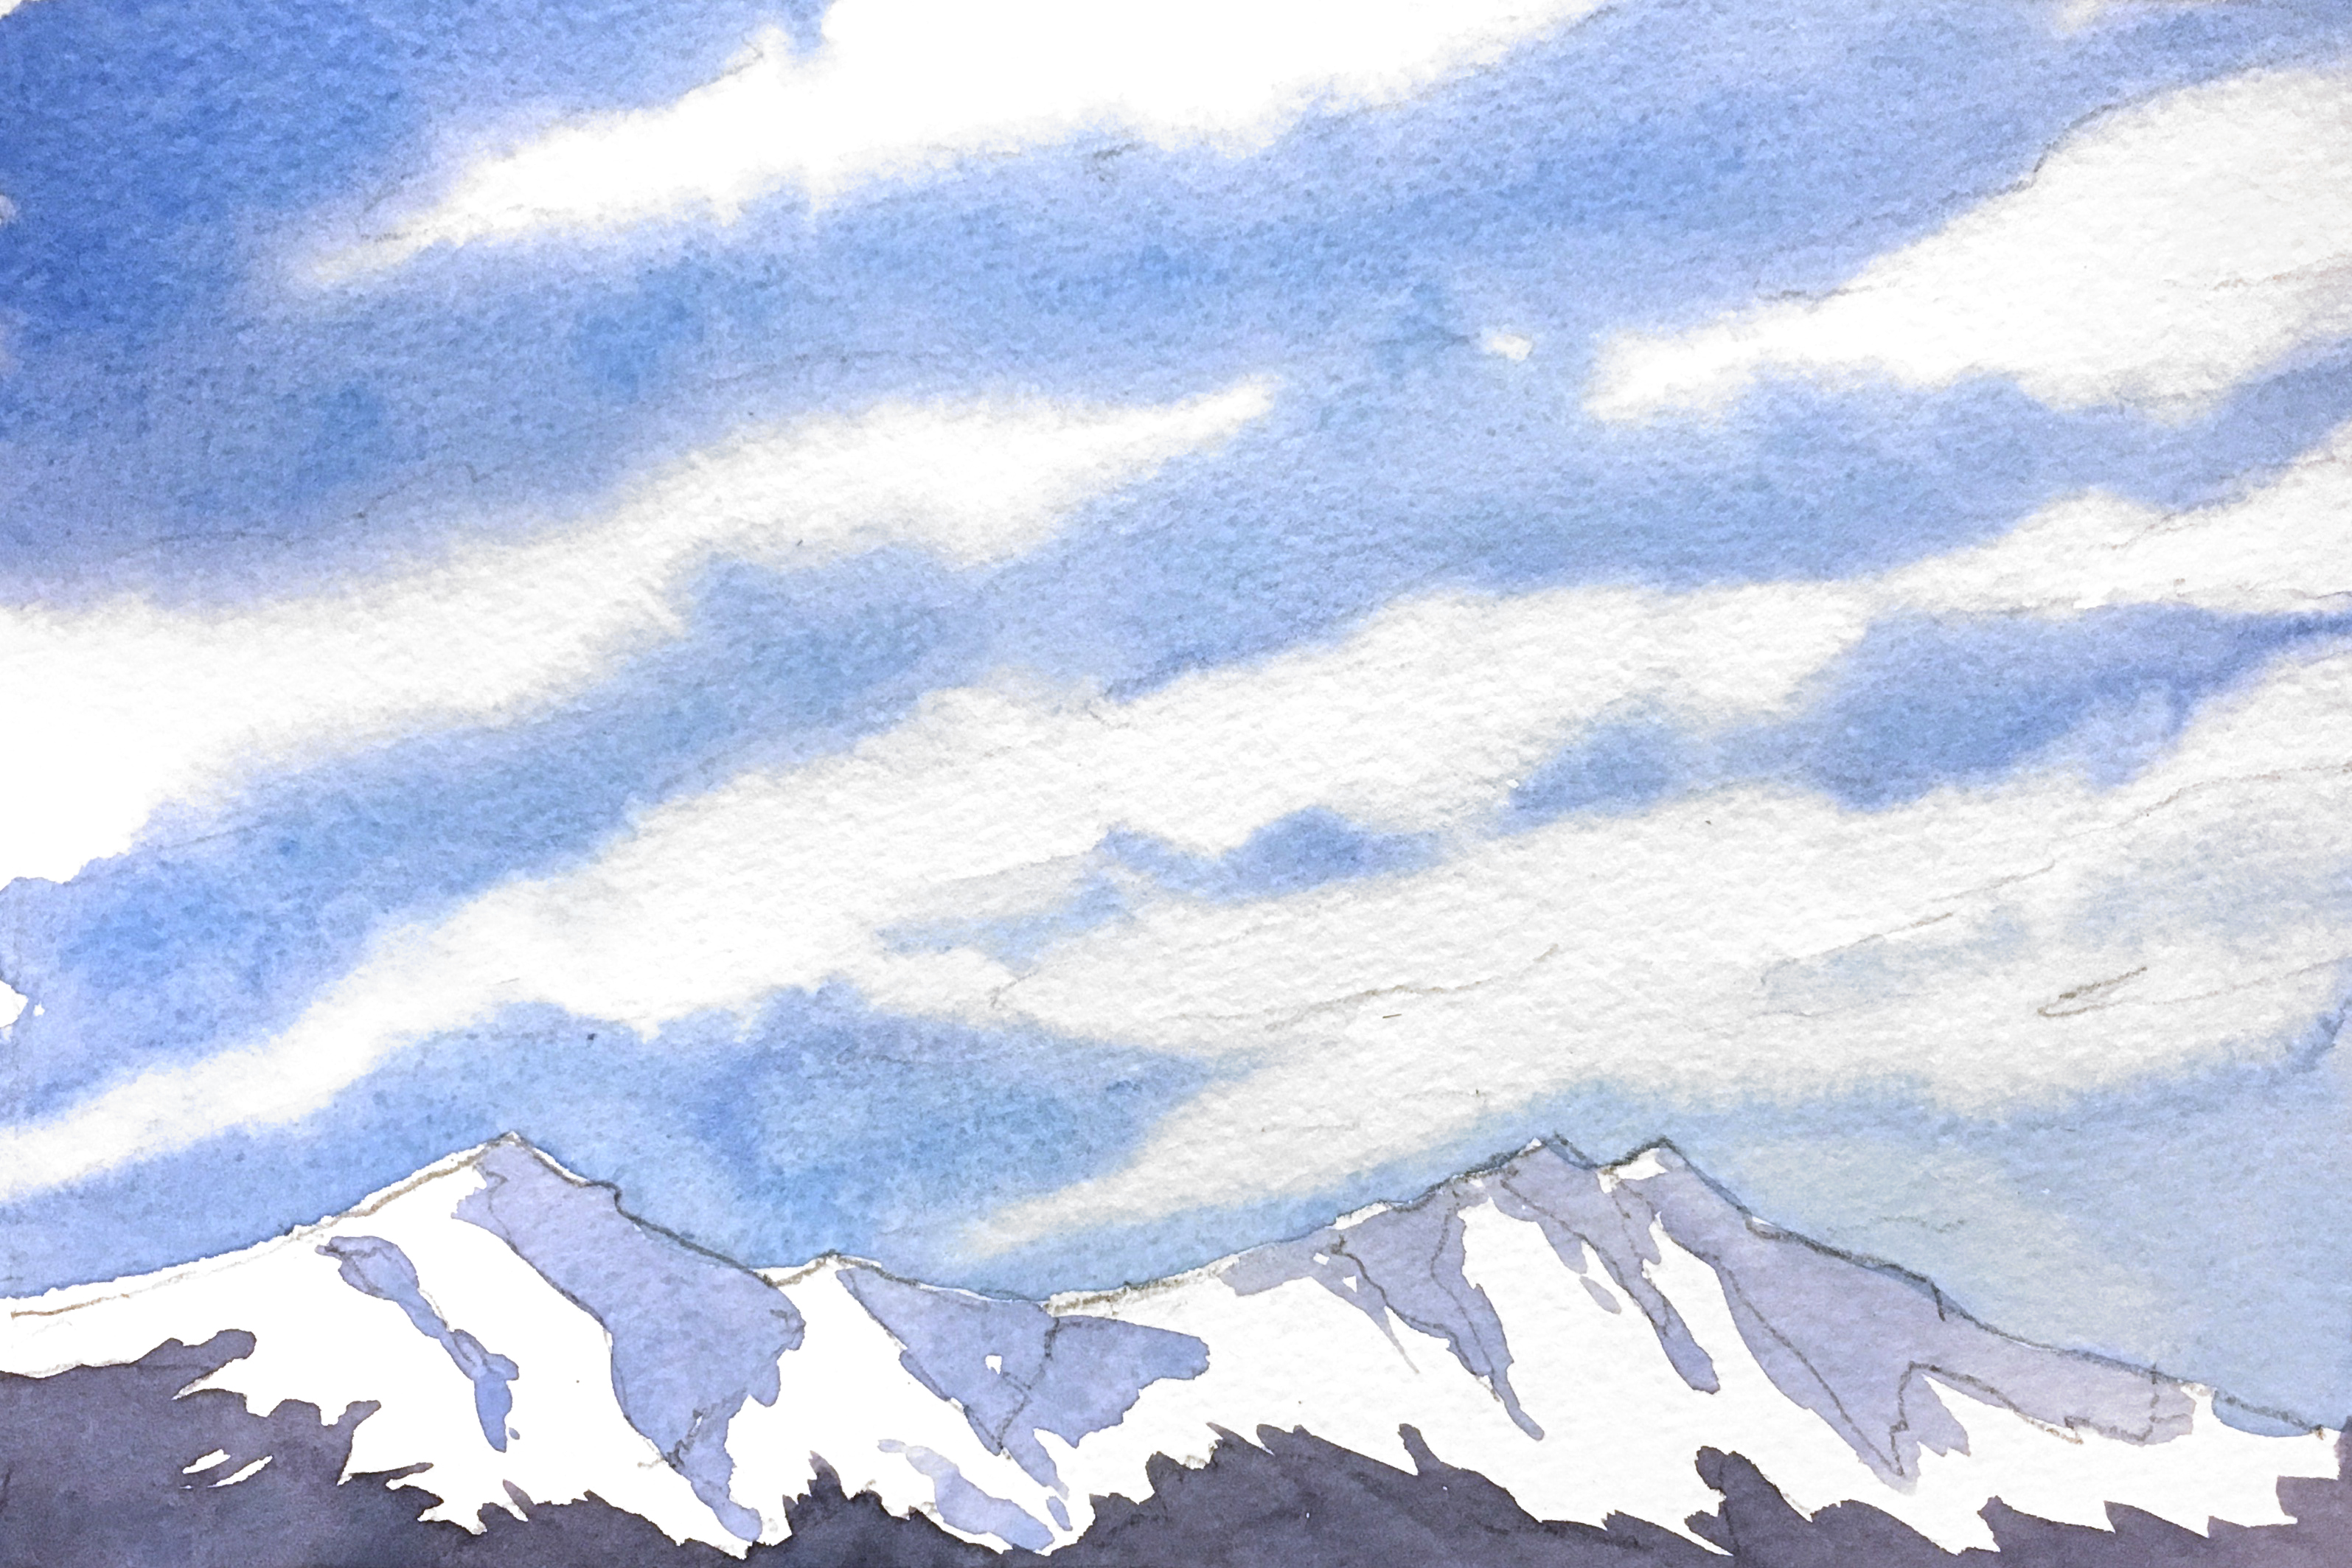 3190x2127 Painting A Sky With Wispy Cirrus Clouds Amp Snow Capped Mountains